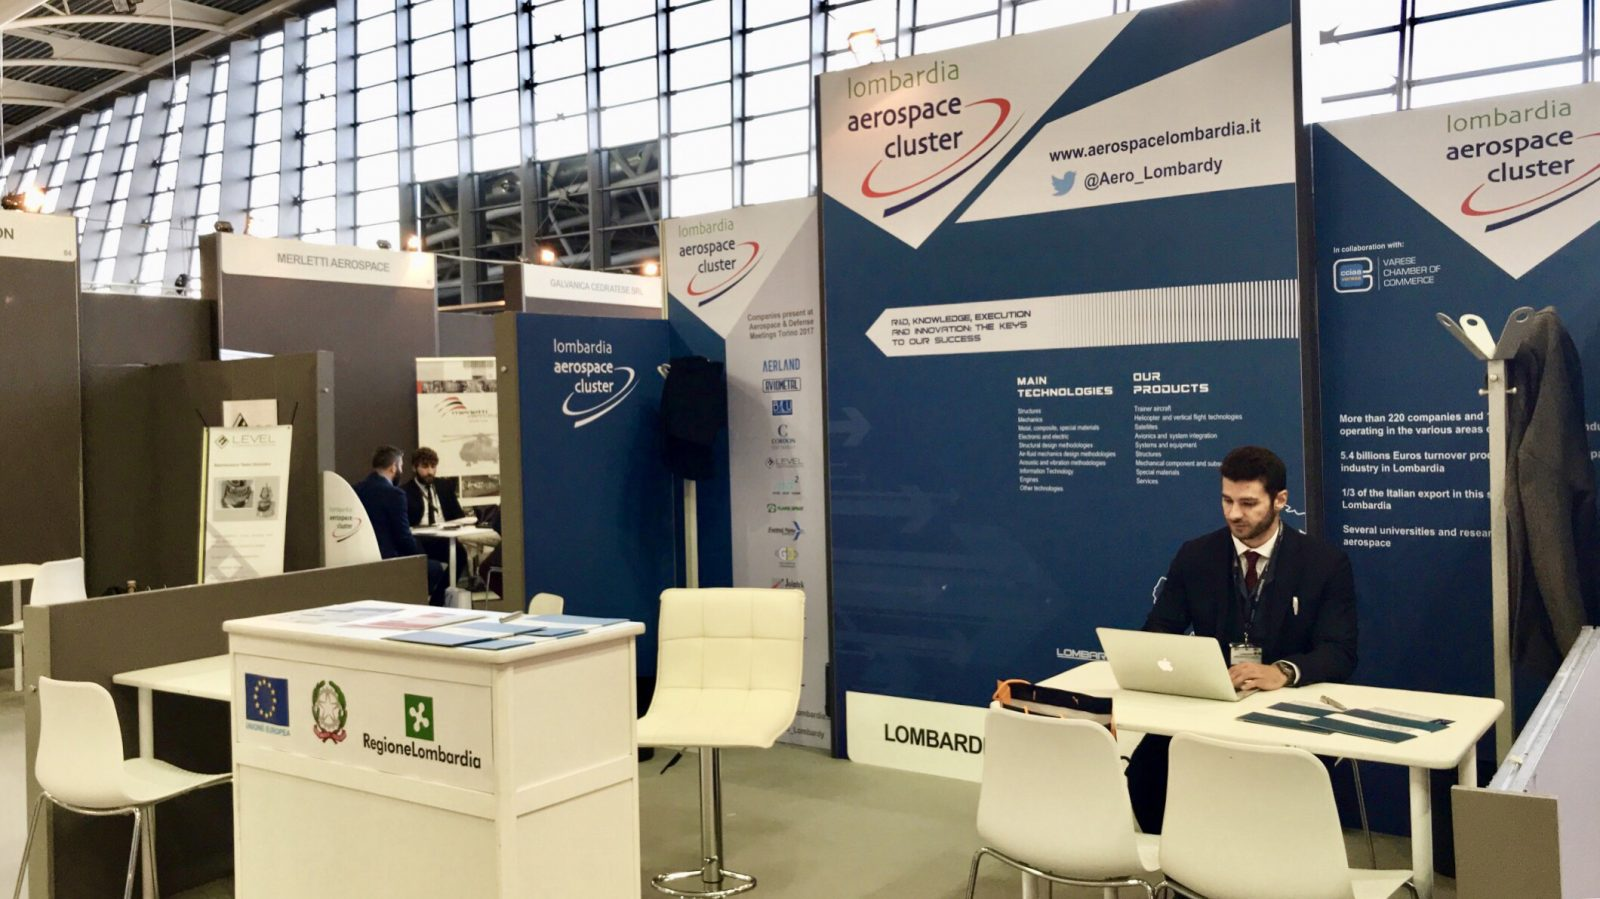 stand Lombardia Aerospace Cluster 2017